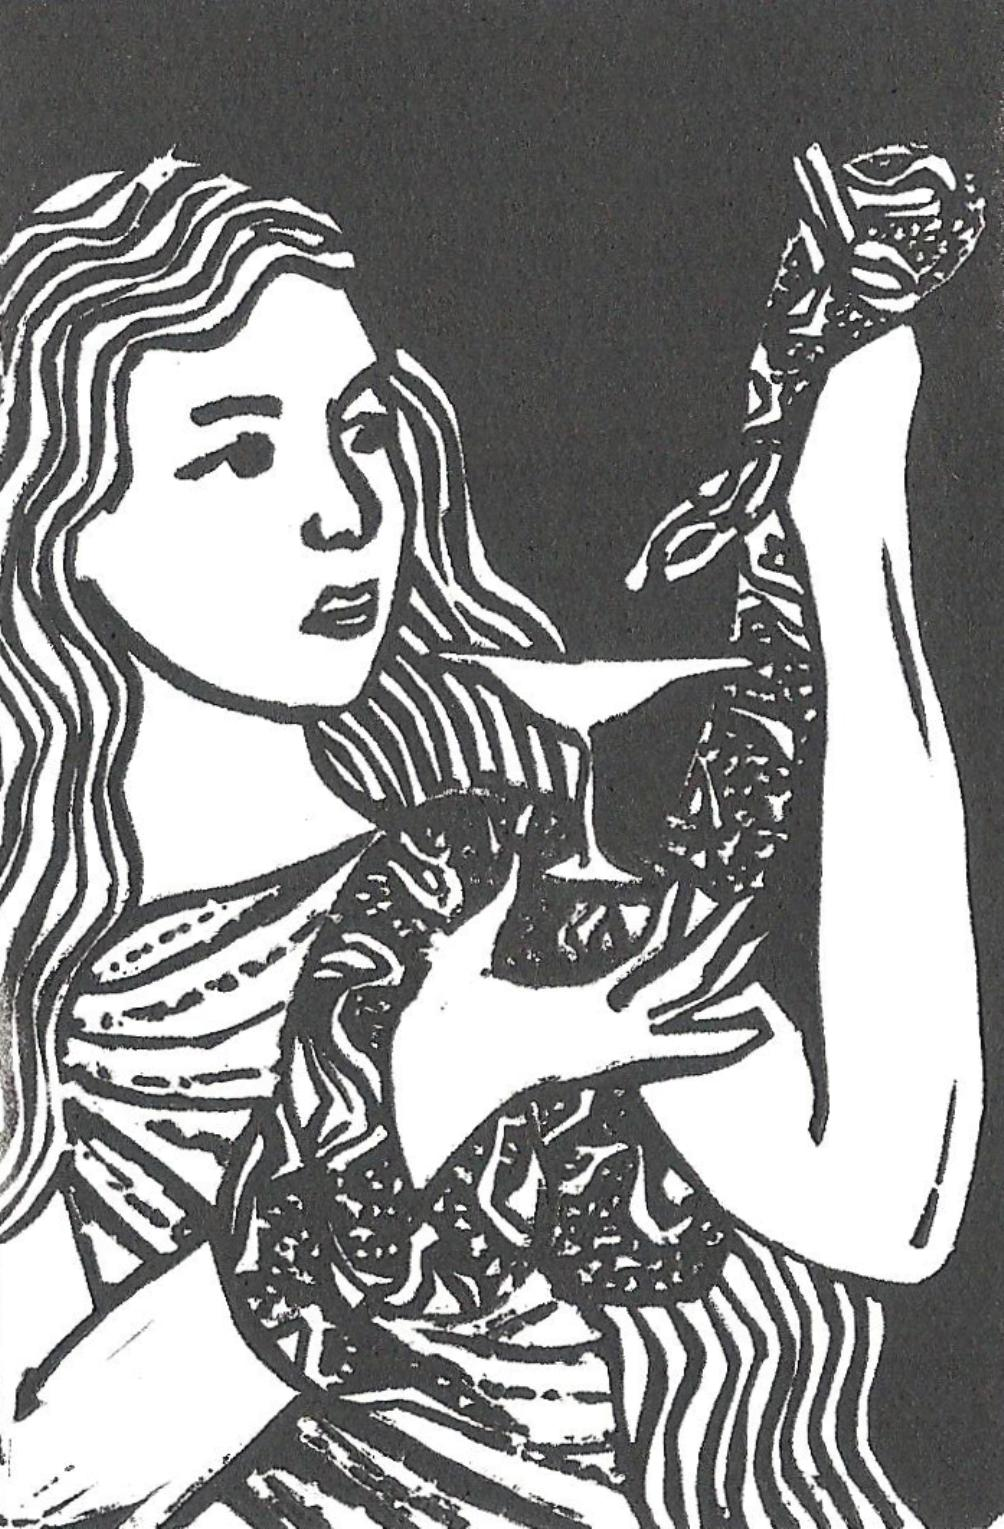 'Hygeia' -Traditional Artist's Hand Pulled Print by Mellissa Read-Devine